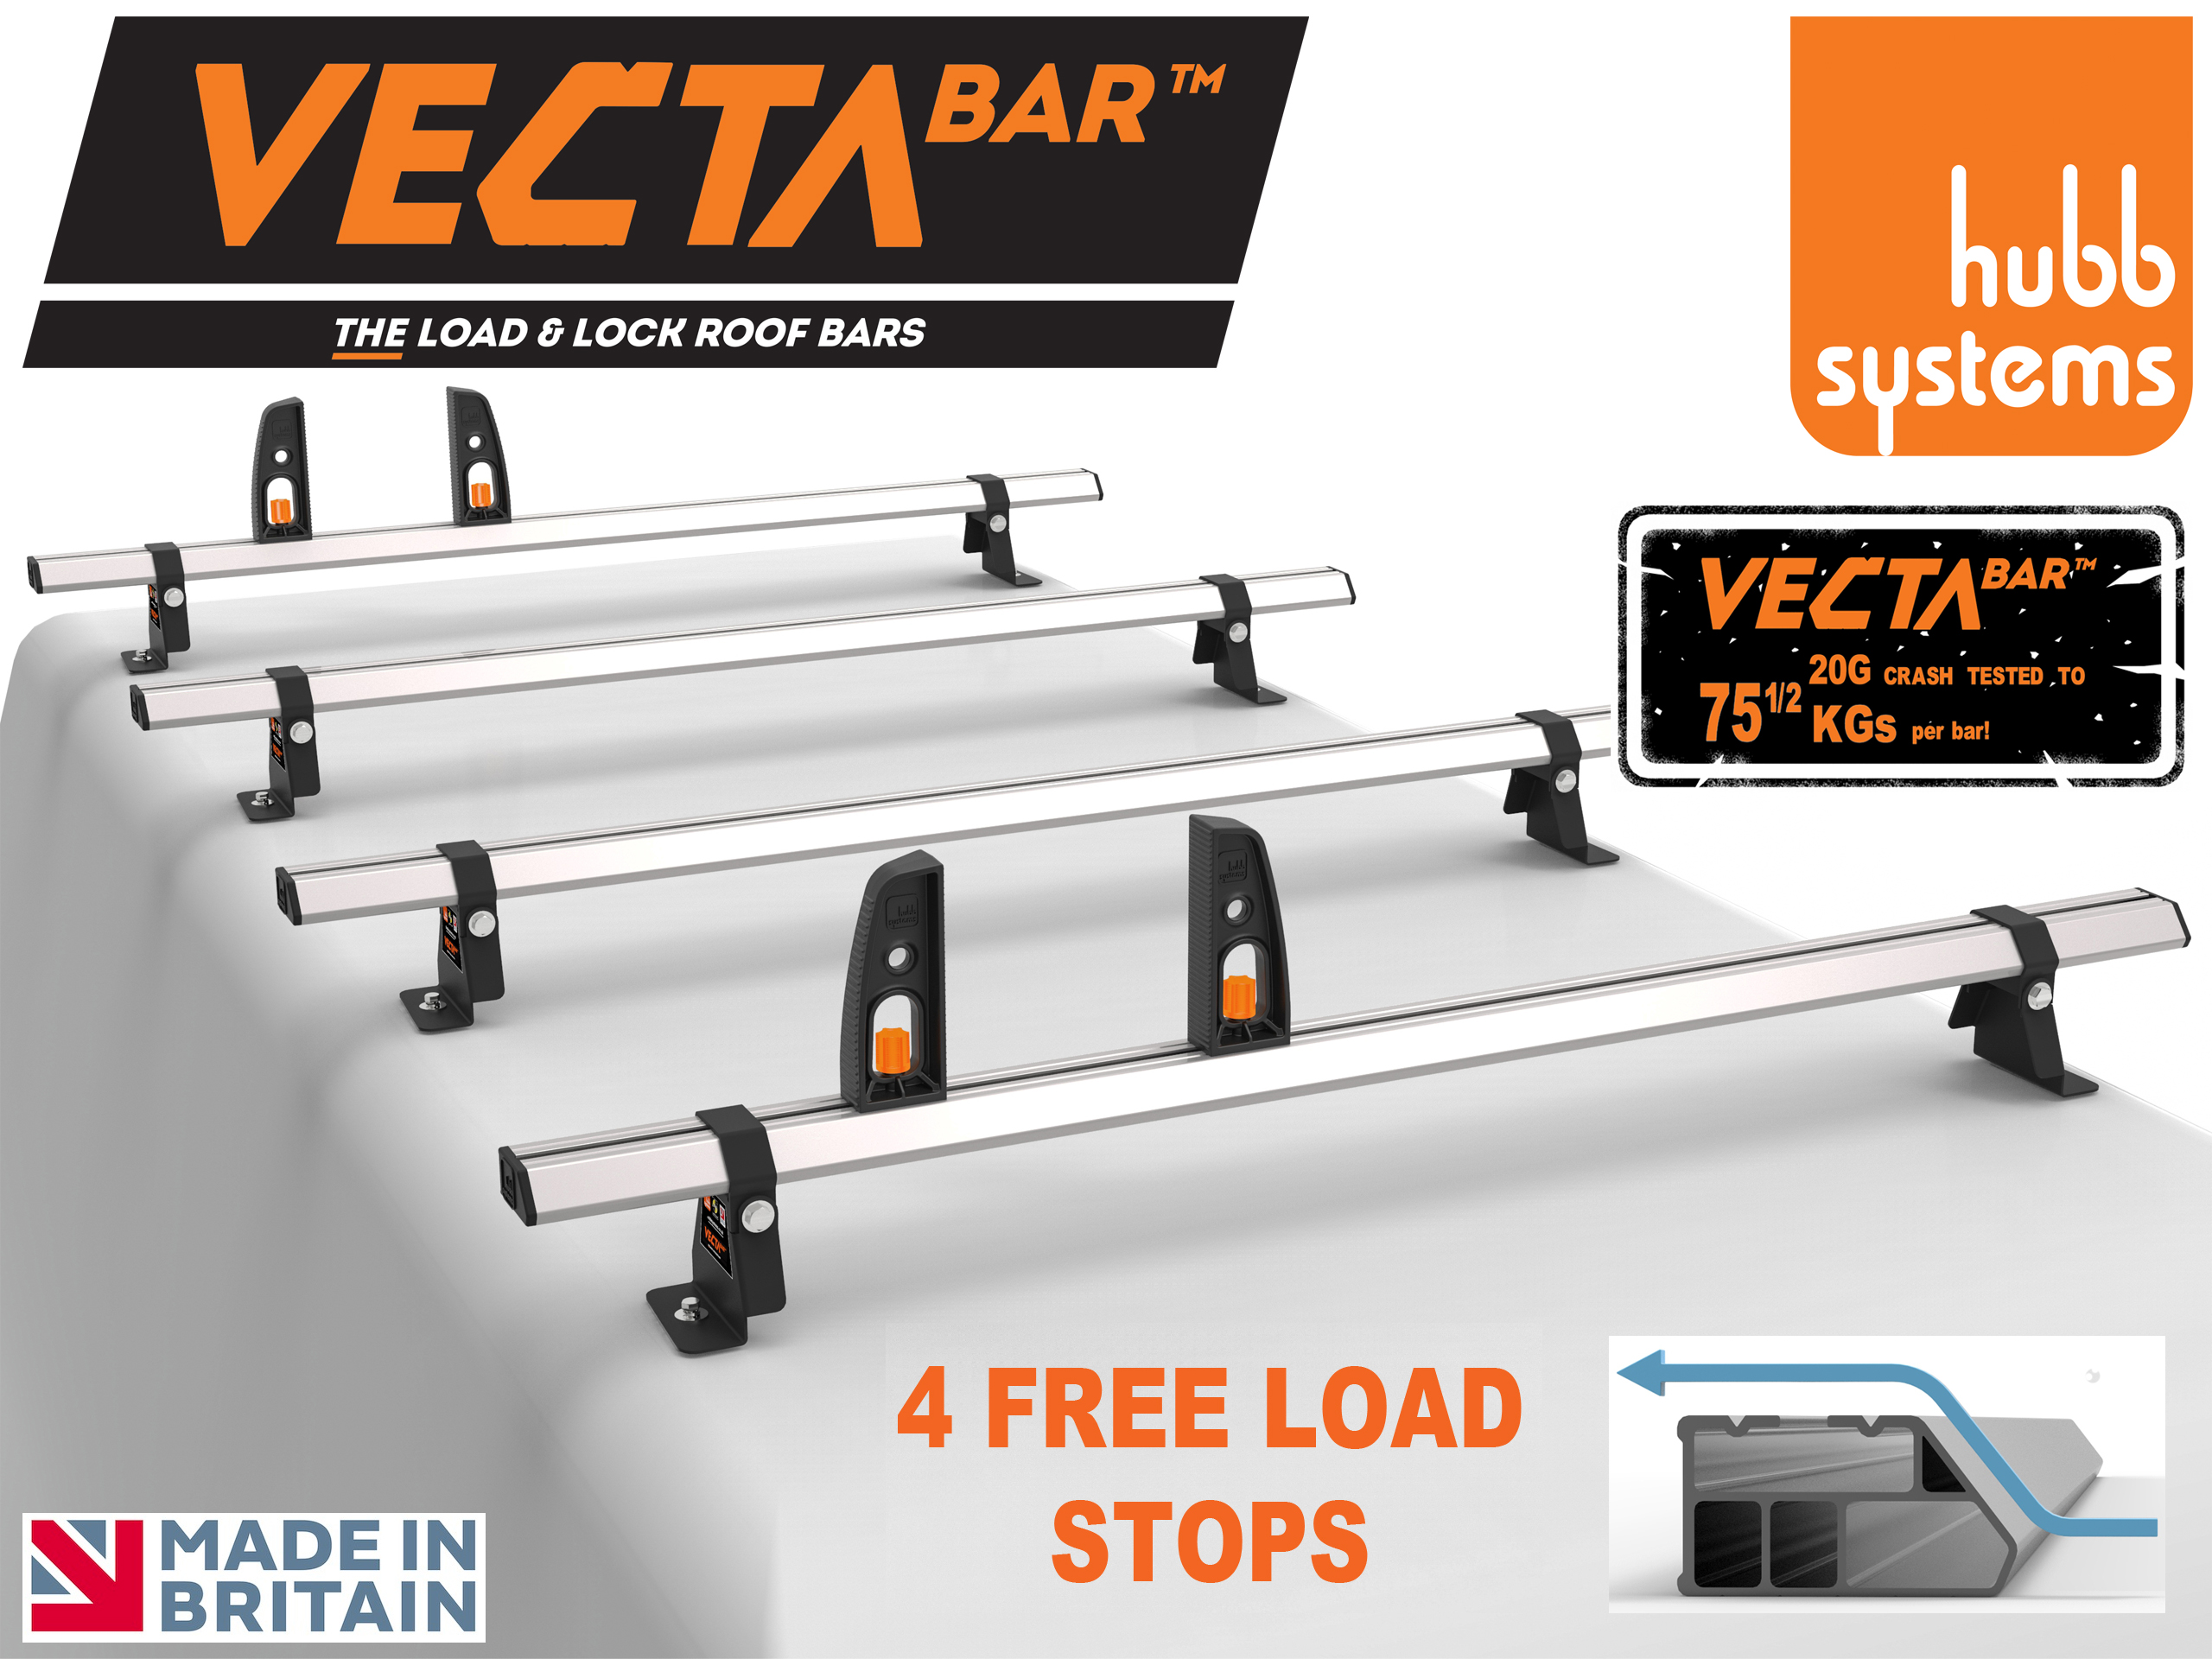 Renault Trafic 2002-2014 H1/H2 VECTA BAR 4 Roof Bars & 4 Load Stops HS45-46-A/HS38-44